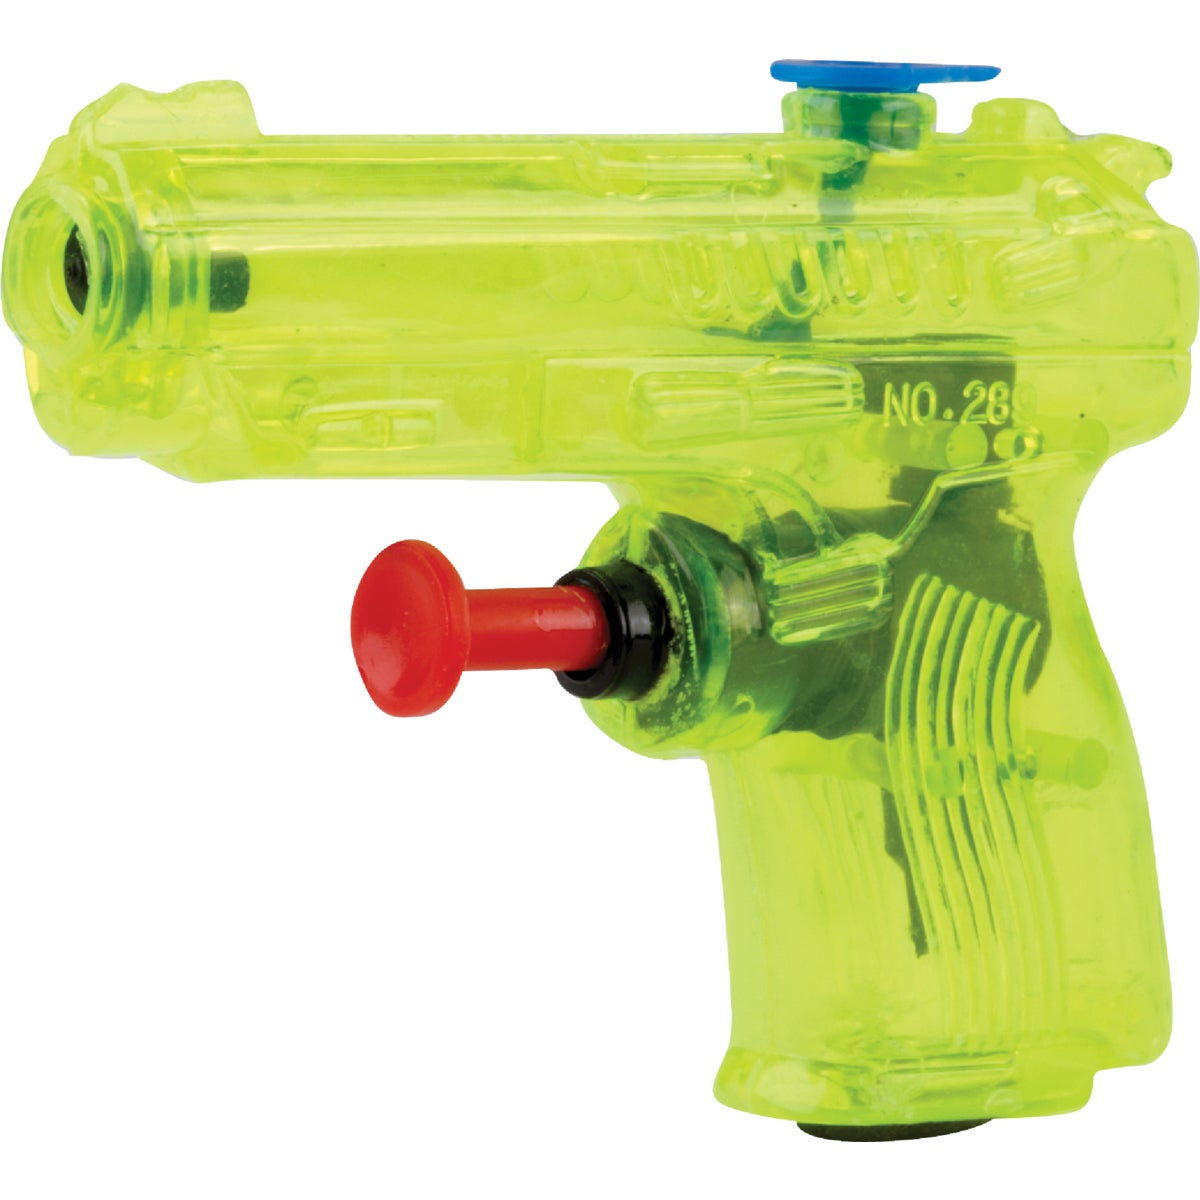 CSG X0 SM WATER GUN - 81006 by Water Sports Llc